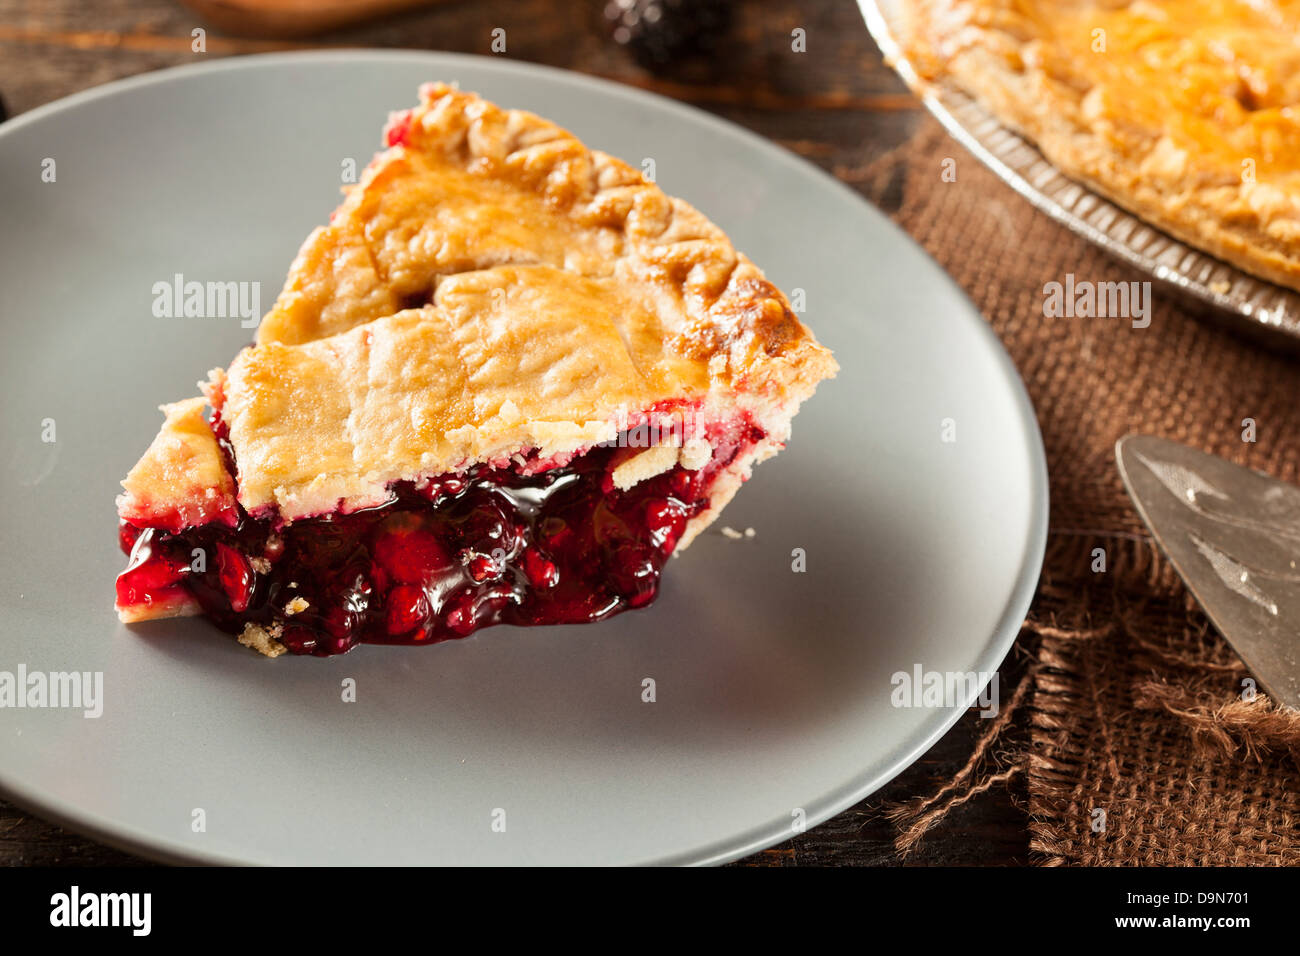 Homemade Organic Berry Pie with blueberries and blackberries Stock Photo